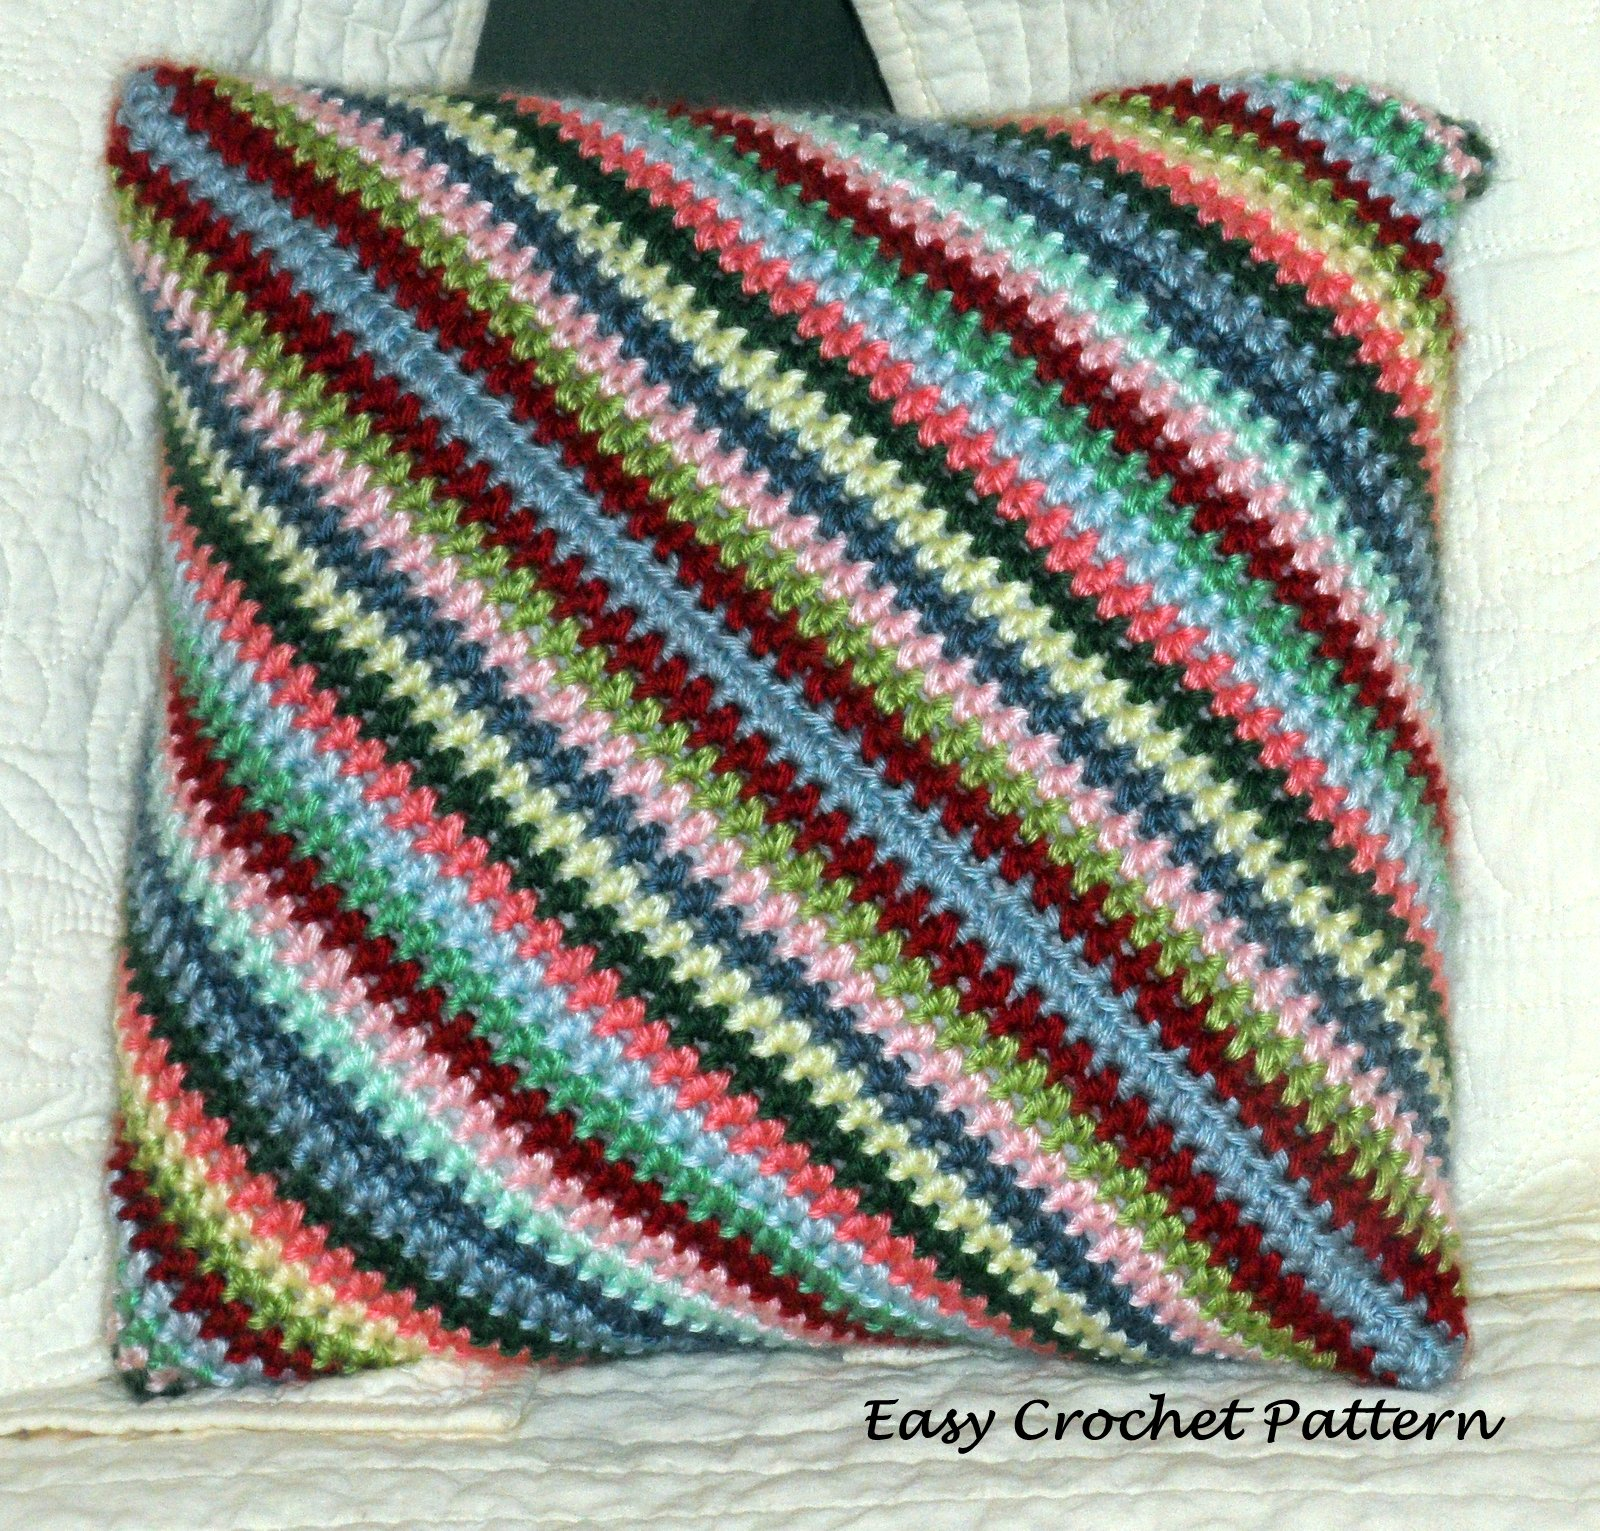 Easy Crochet Pattern: Diagonal Striped Crocheted Pillow